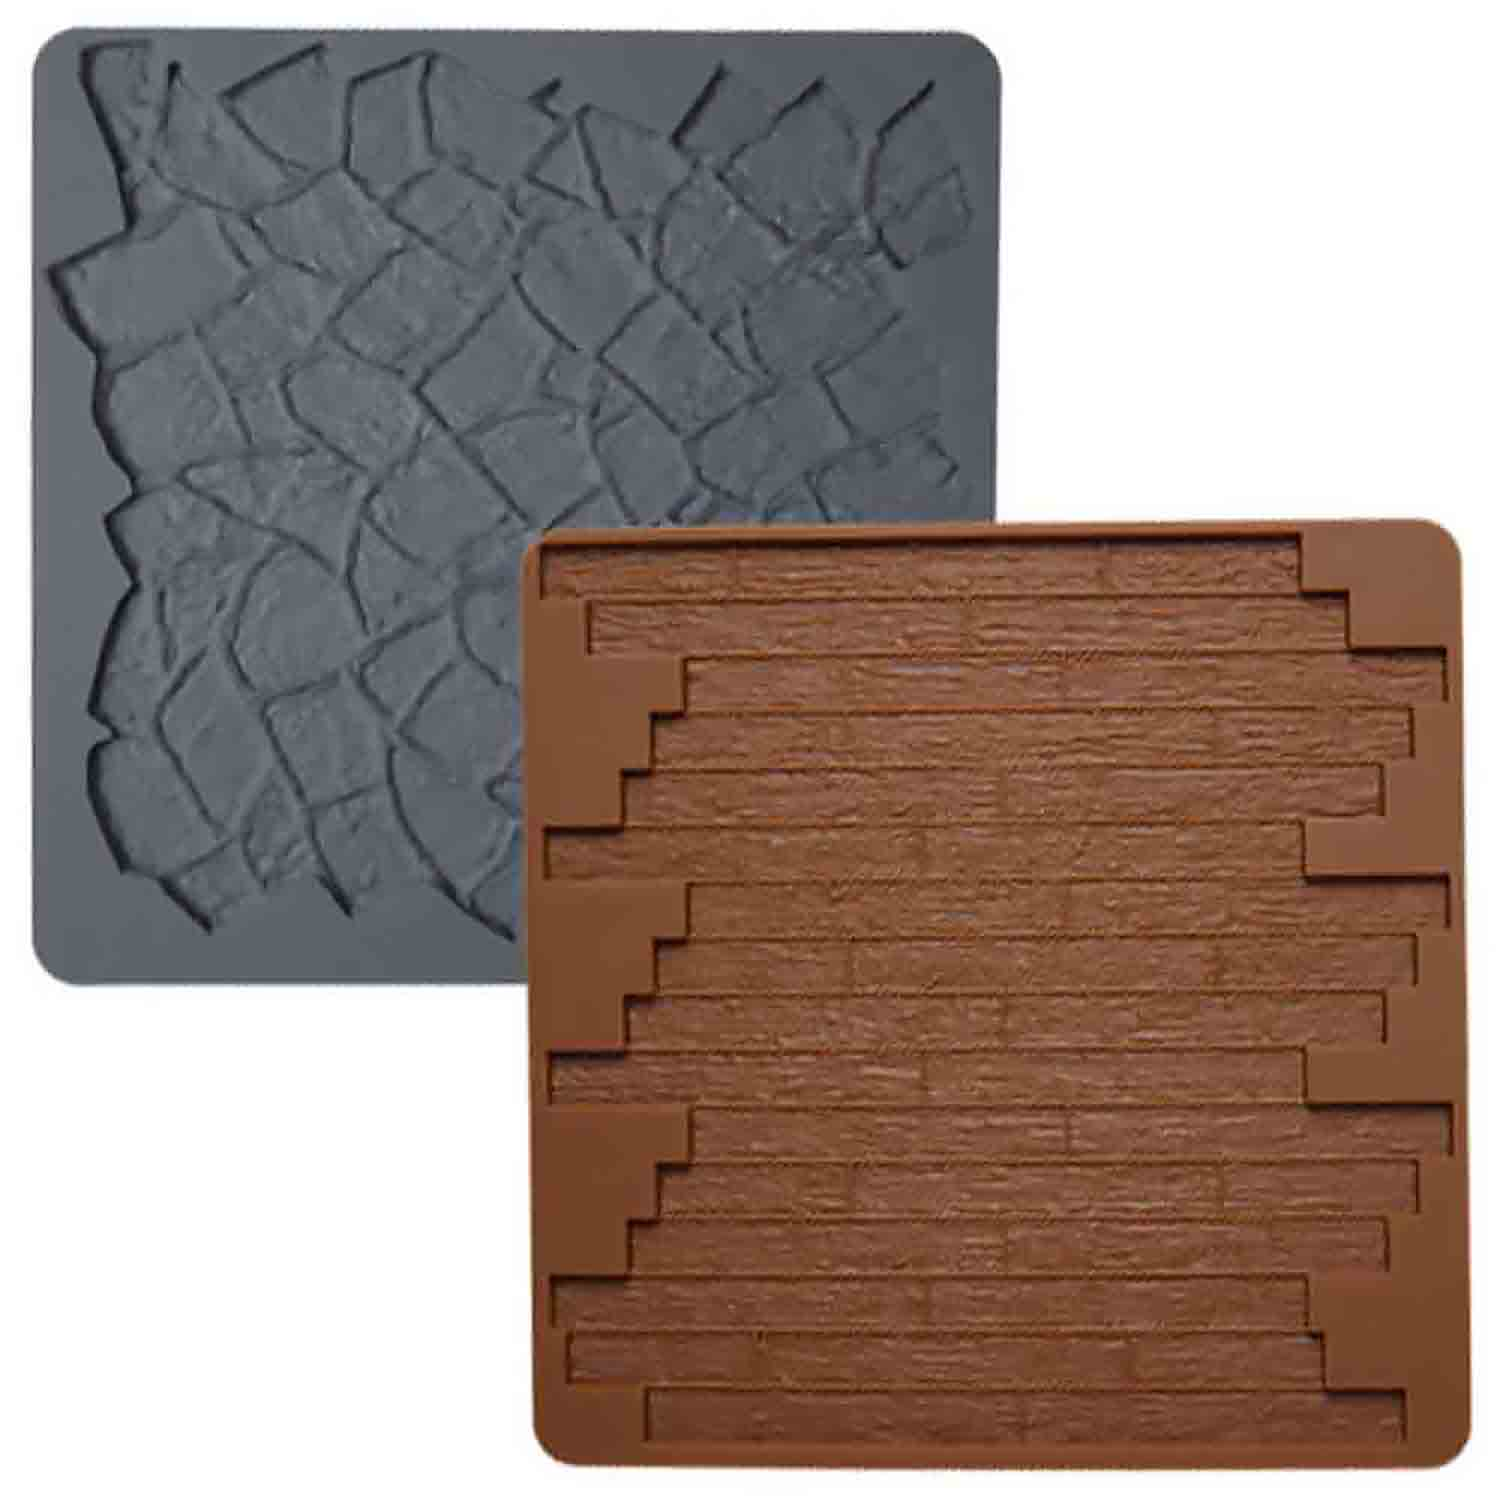 Stone and Wood Texture Mat Set